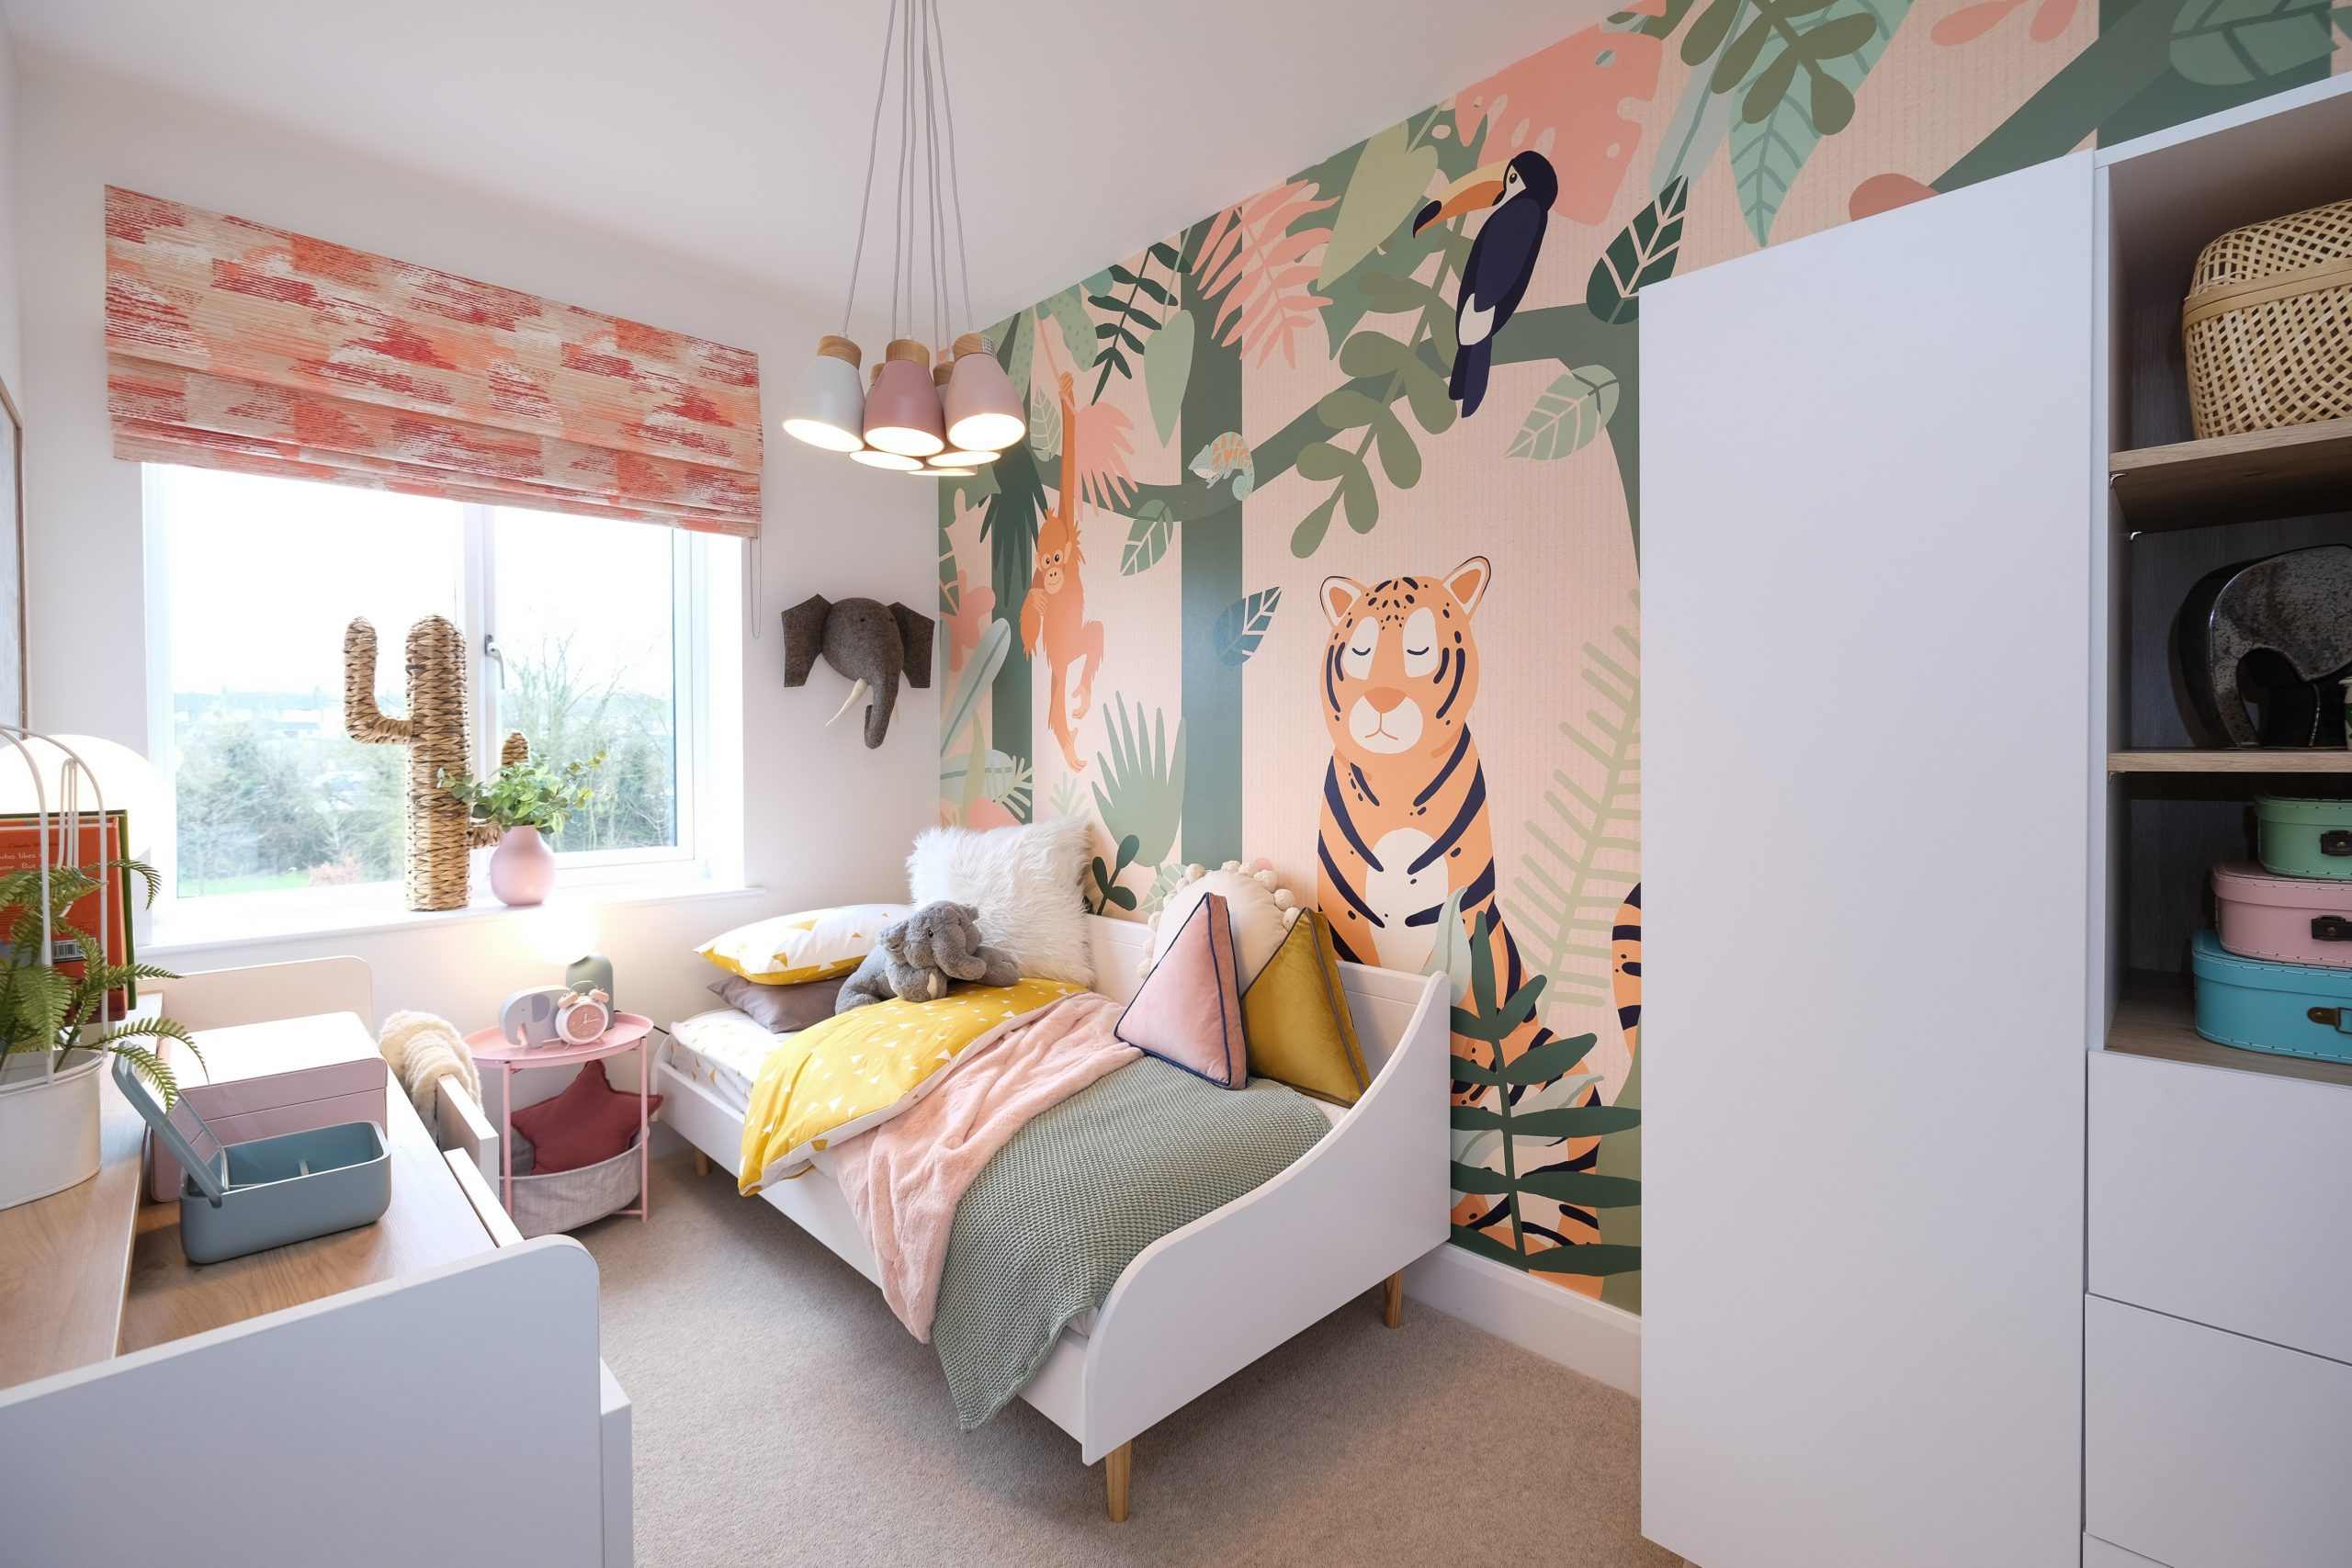 Bedroom three at Catalyst's The Printworks - Shared Ownership homes available on Share to Buy